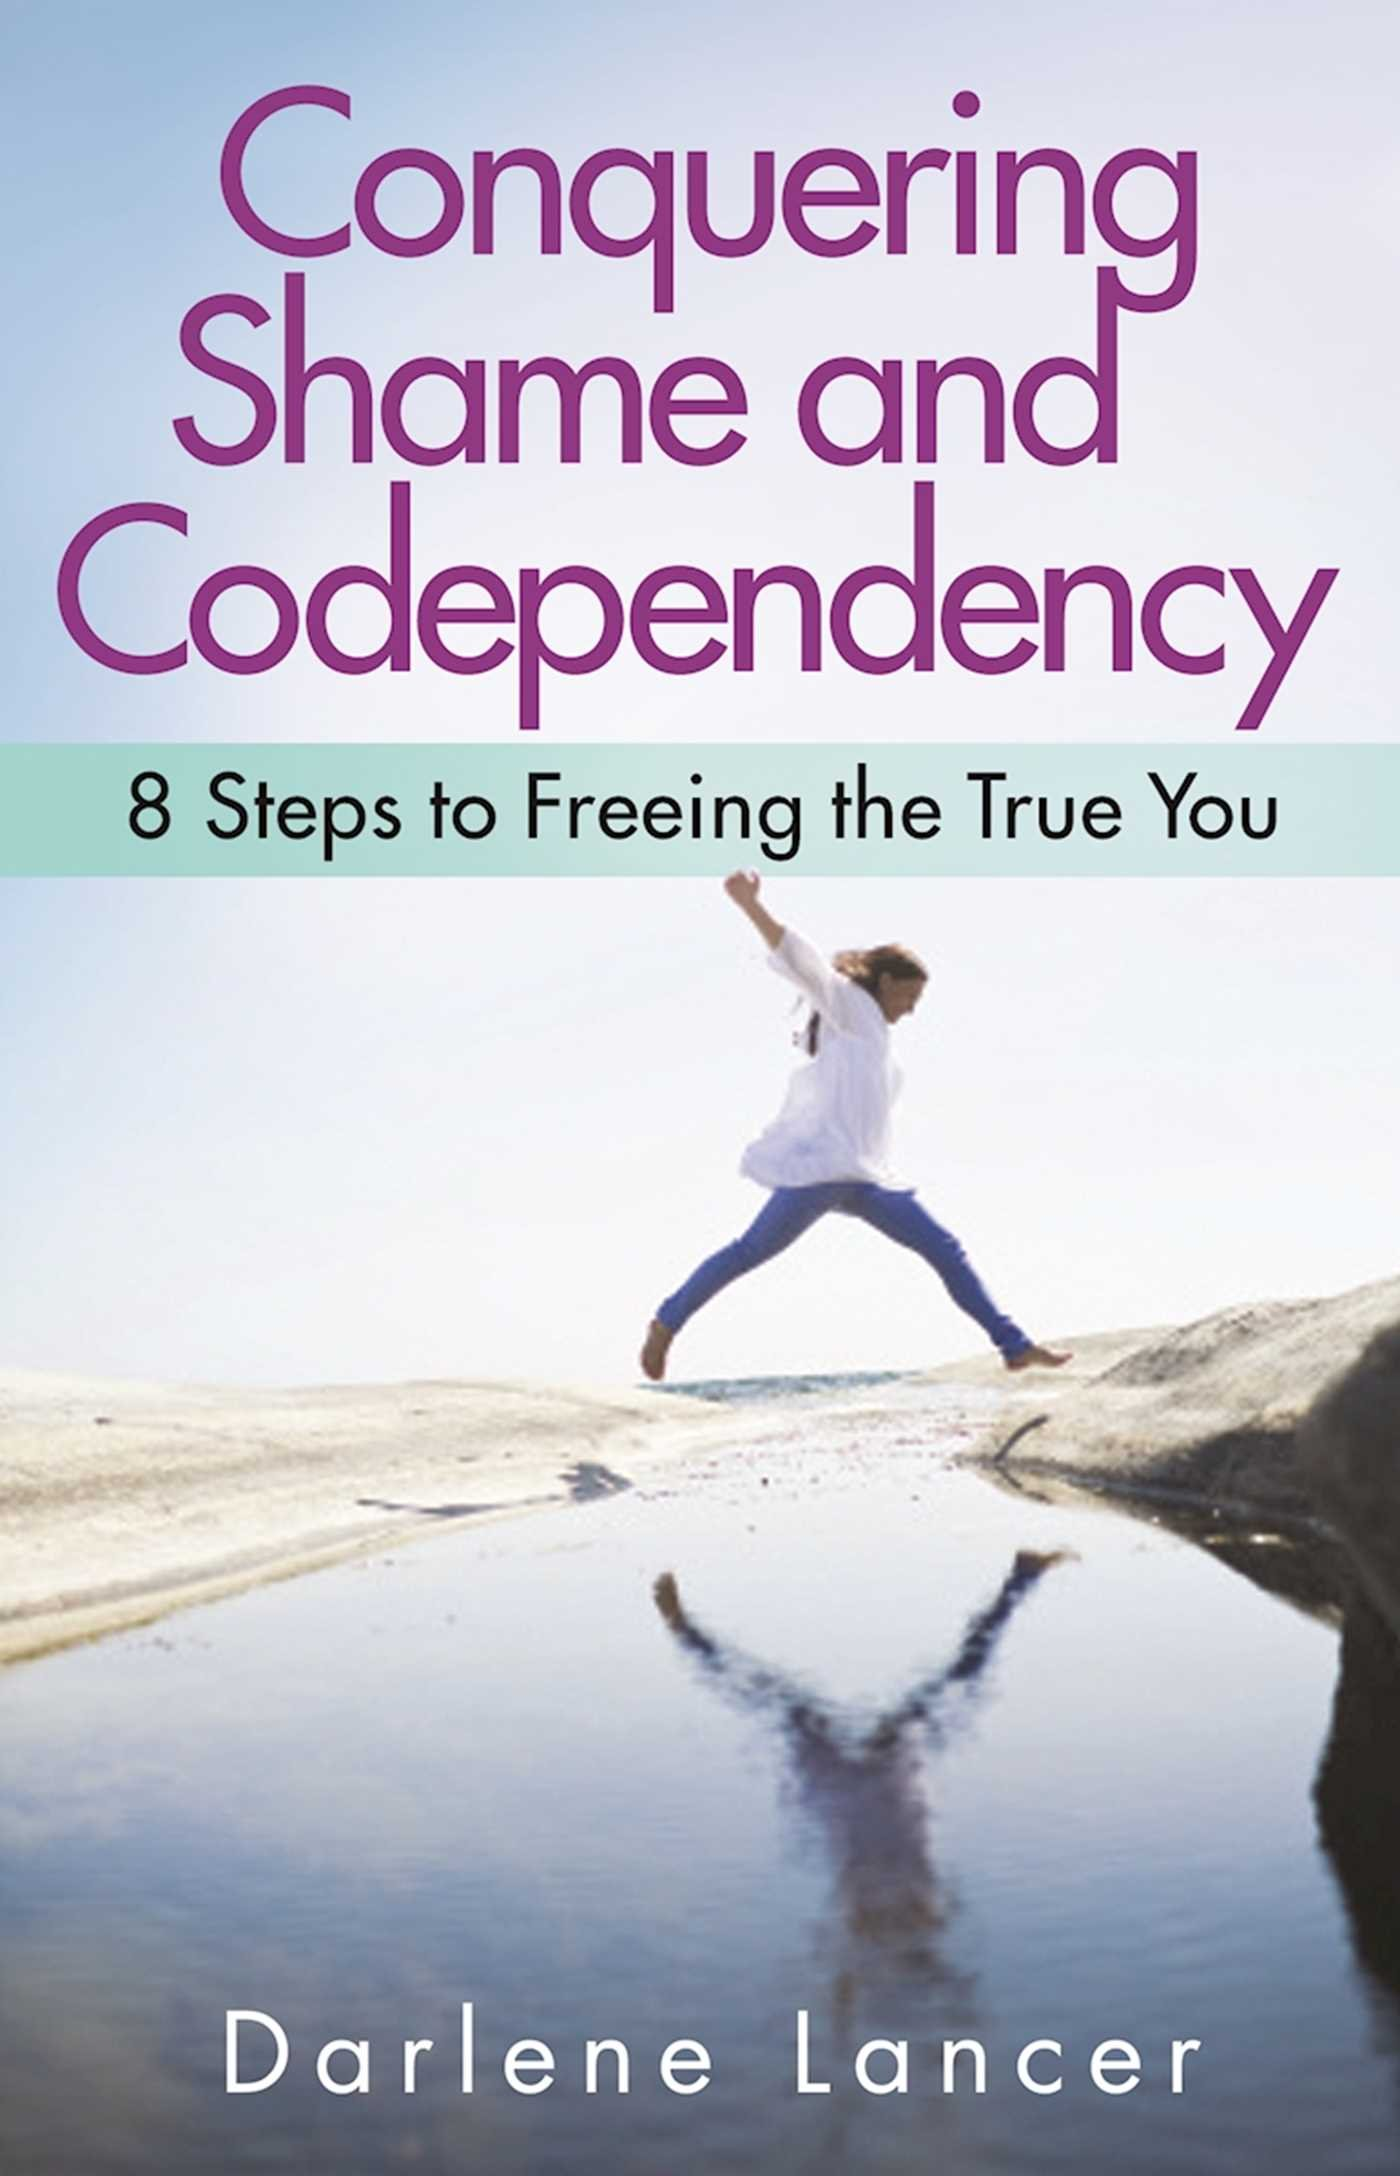 Conquering Shame and Codependency: 8 Steps to